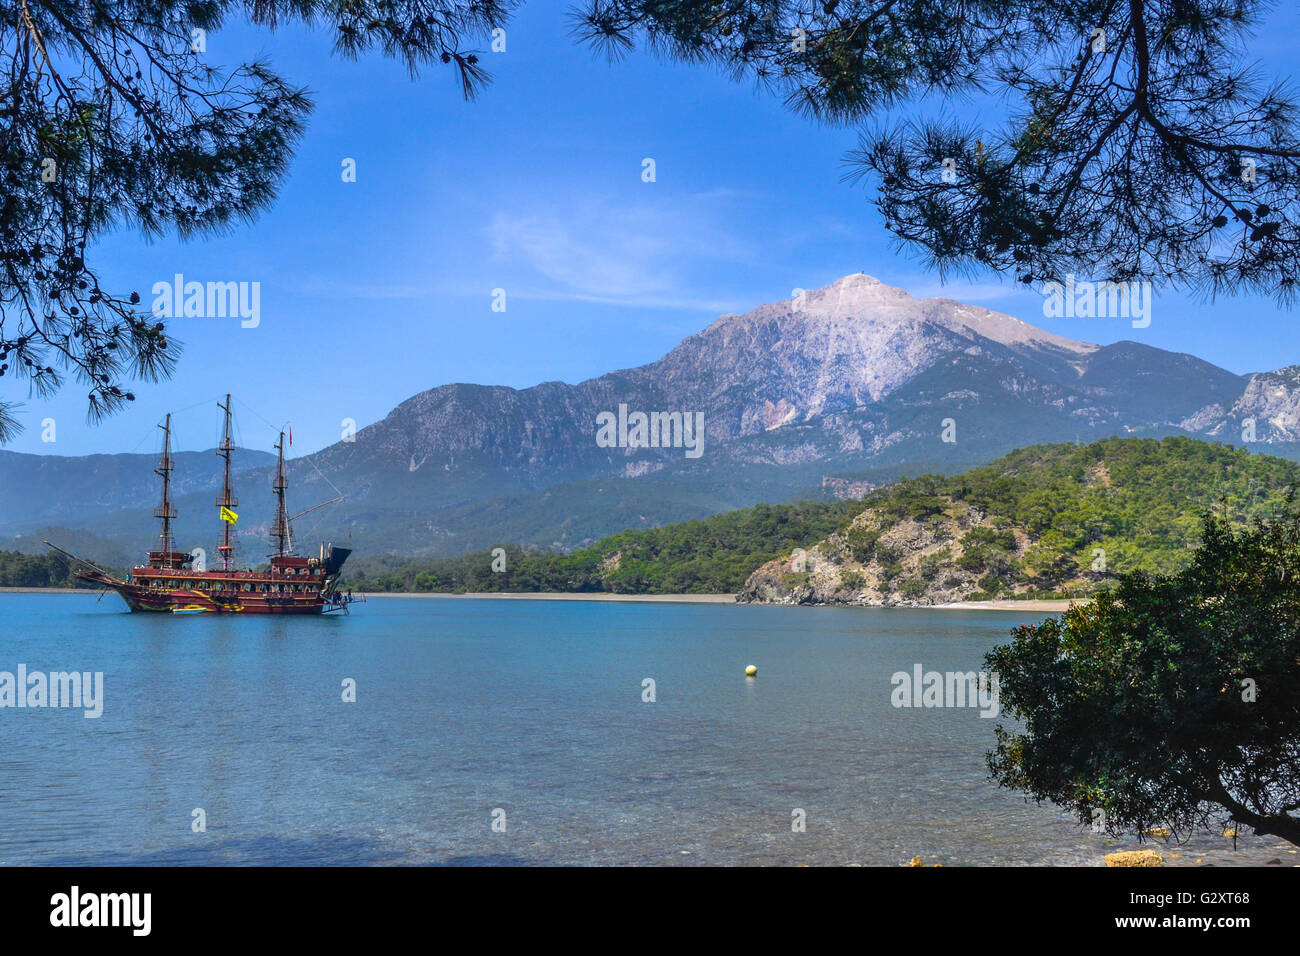 travel, turkey, kemer, boattrip, amazing word, postcard view, mountains with snow - Stock Image